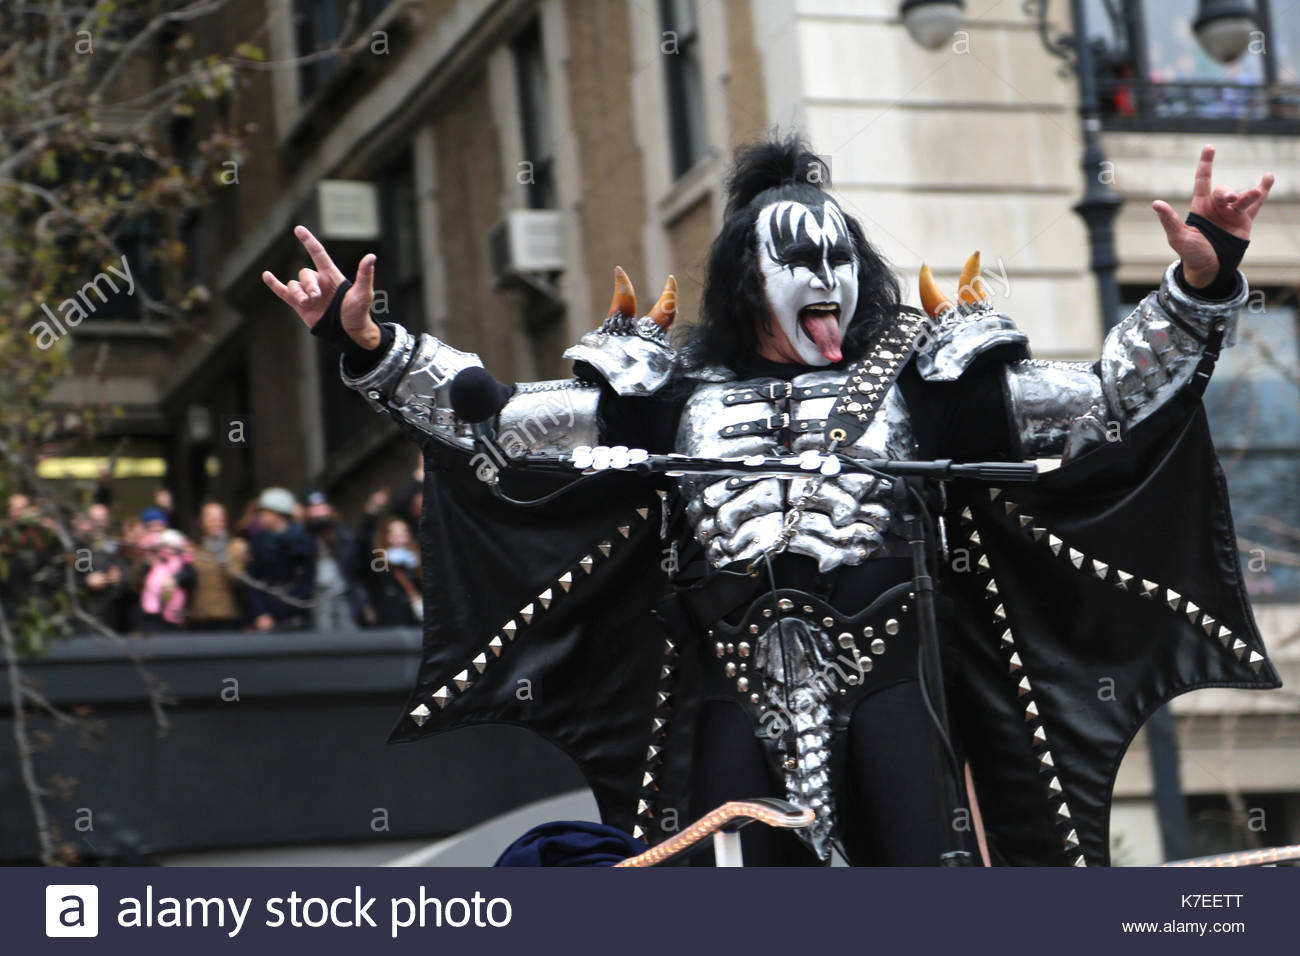 Gene Simmons of KISS  KISS band members rock down Central Park West     Gene Simmons of KISS  KISS band members rock down Central Park West at the  Macy s Thanksgiving Day Parade in New York City on November 27  2014